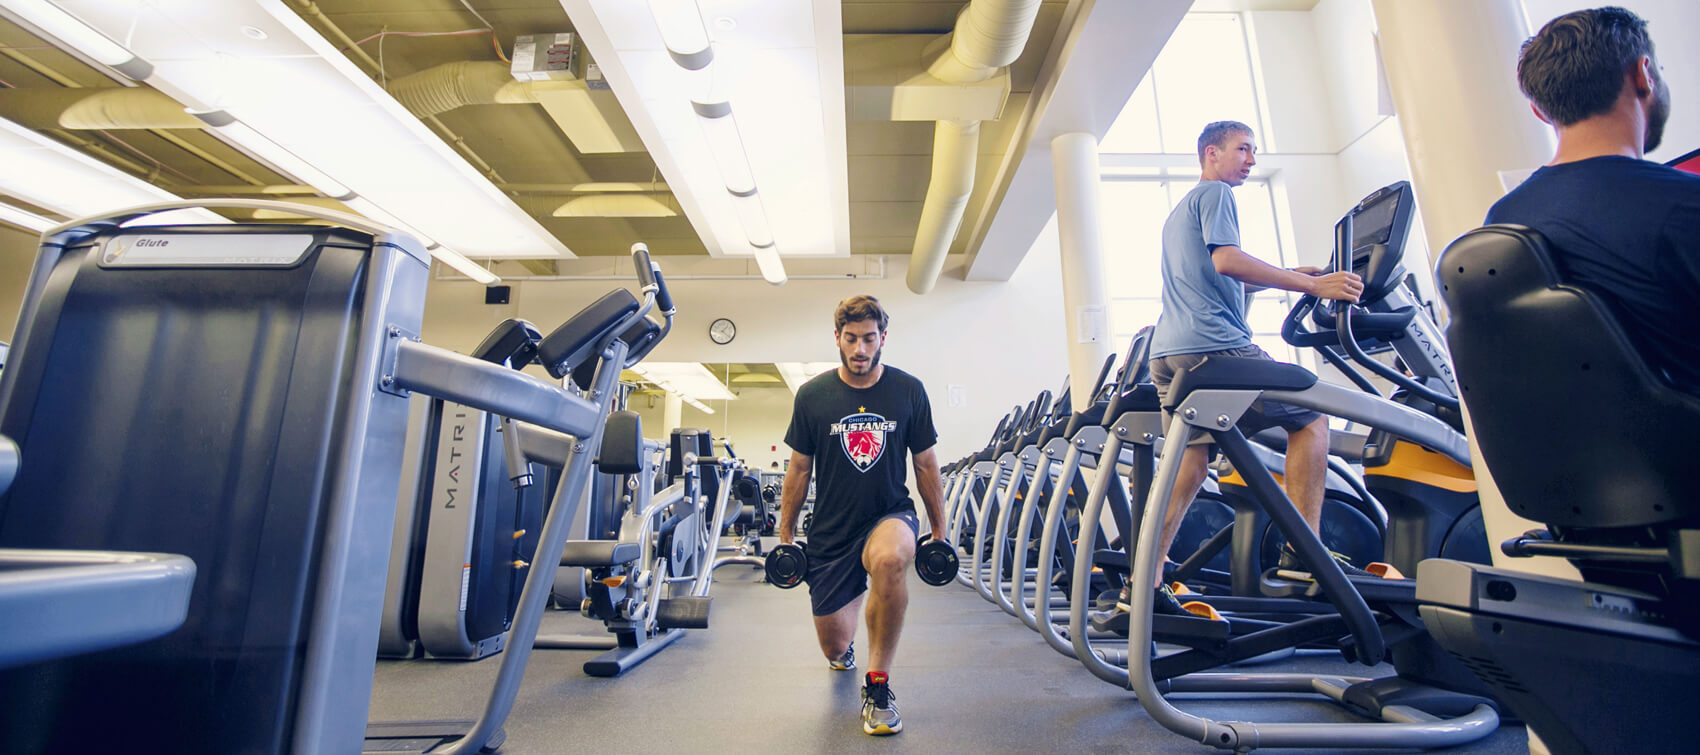 Man pursuing a fitness management degree exercising in a gym